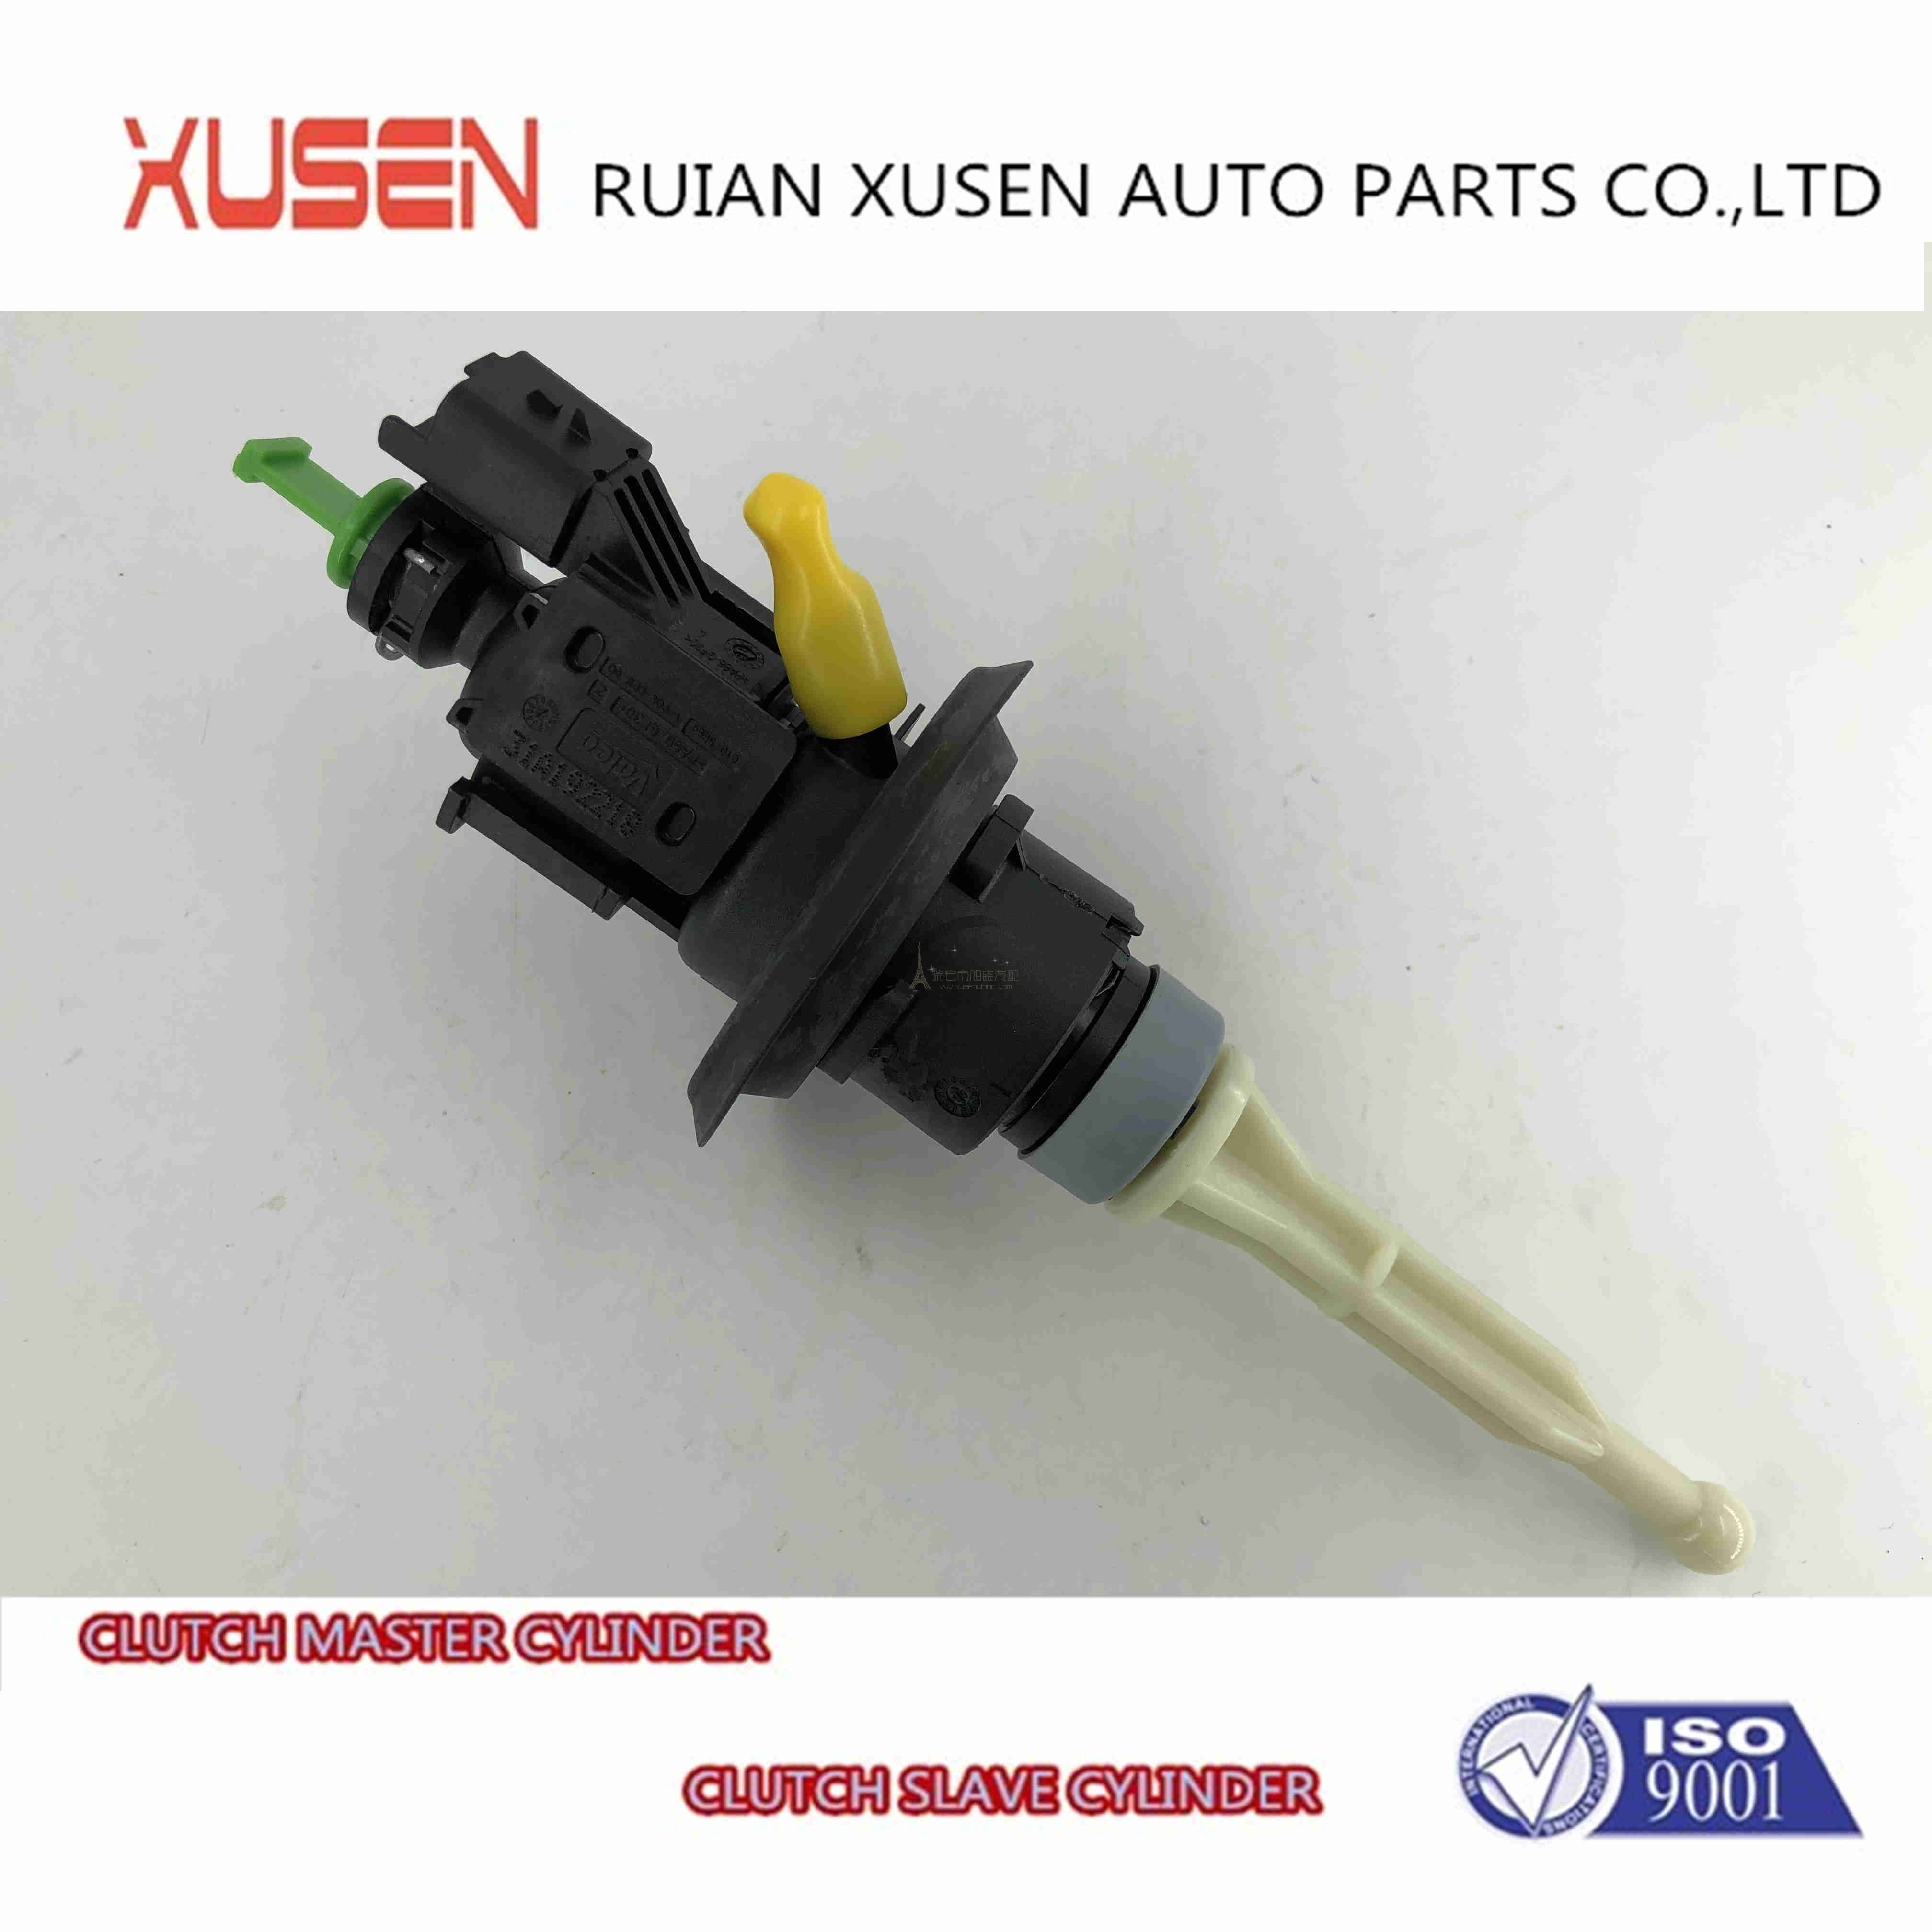 Clutch master cylinder 9674258980 for PEUGEOT 308 II Partner III CITROEN C4